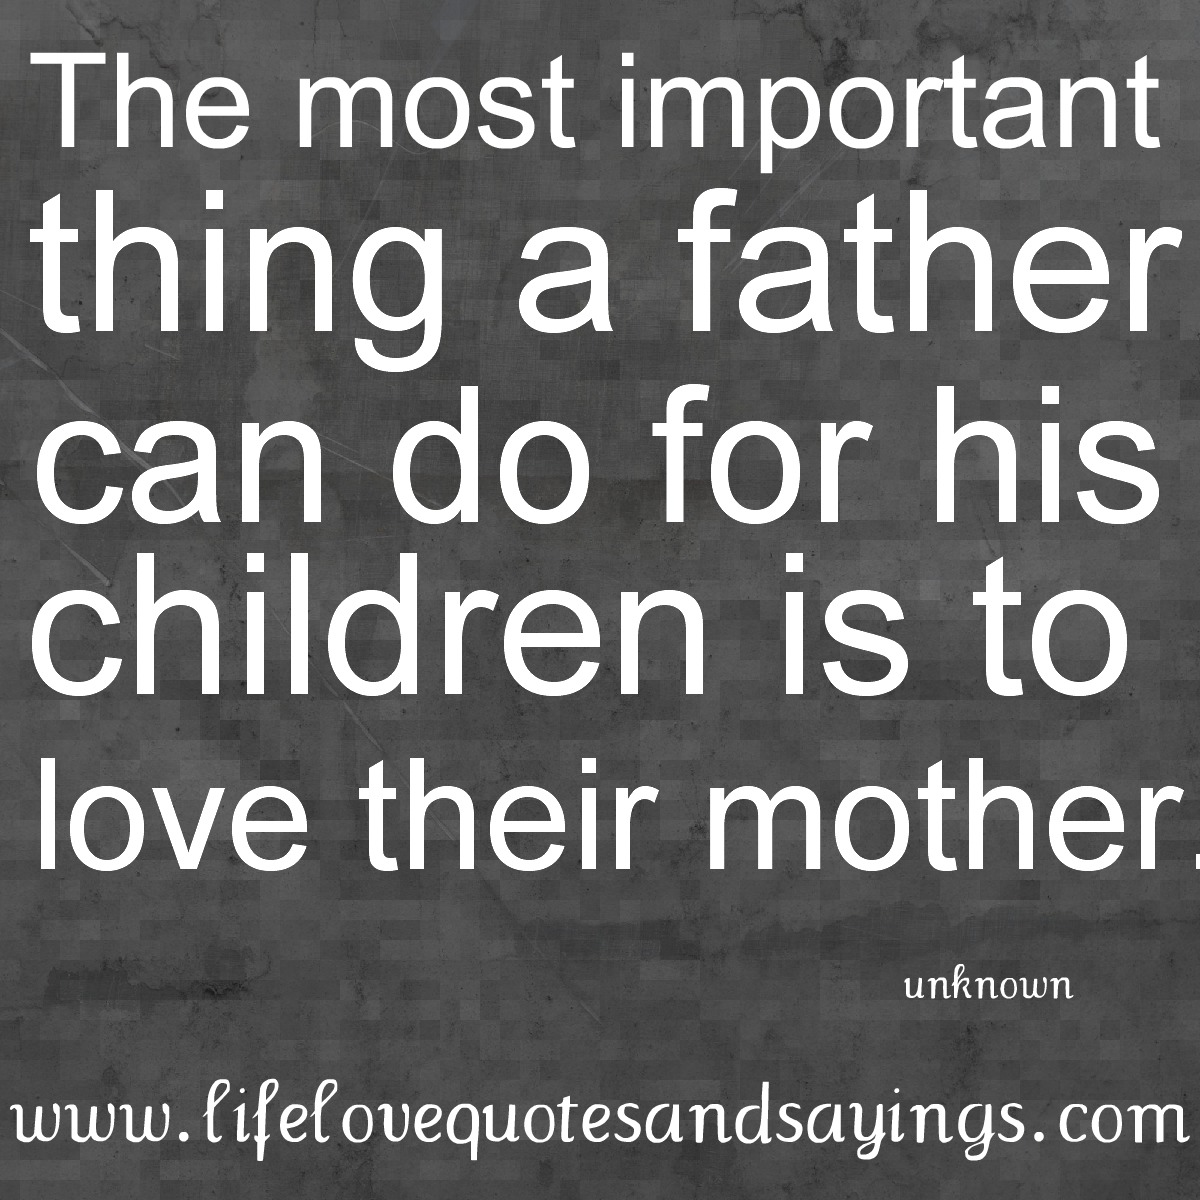 Quotes About The Love Of A Father: I Love My Mother And Father Quotes. QuotesGram